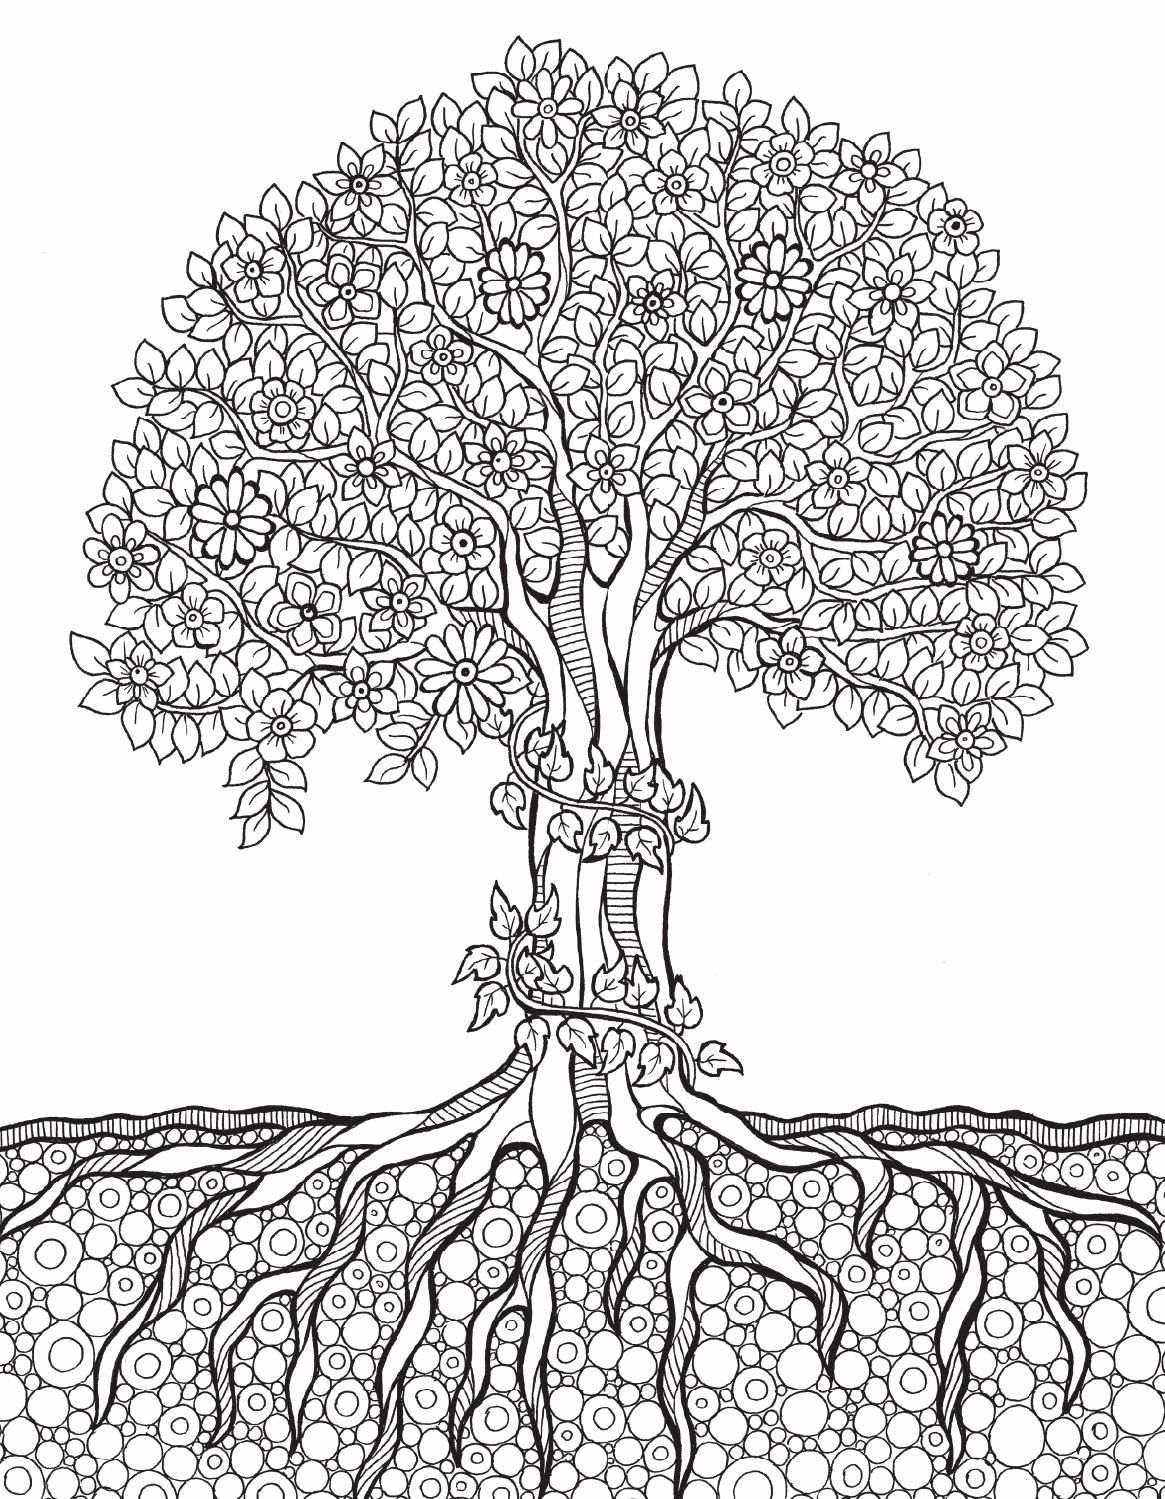 Tree Coloring Pages For Adults Unique Of Tree And Roots Coloring Pages Sabadaphnecottage Mandala Coloring Pages Tree Coloring Page Mandala Coloring